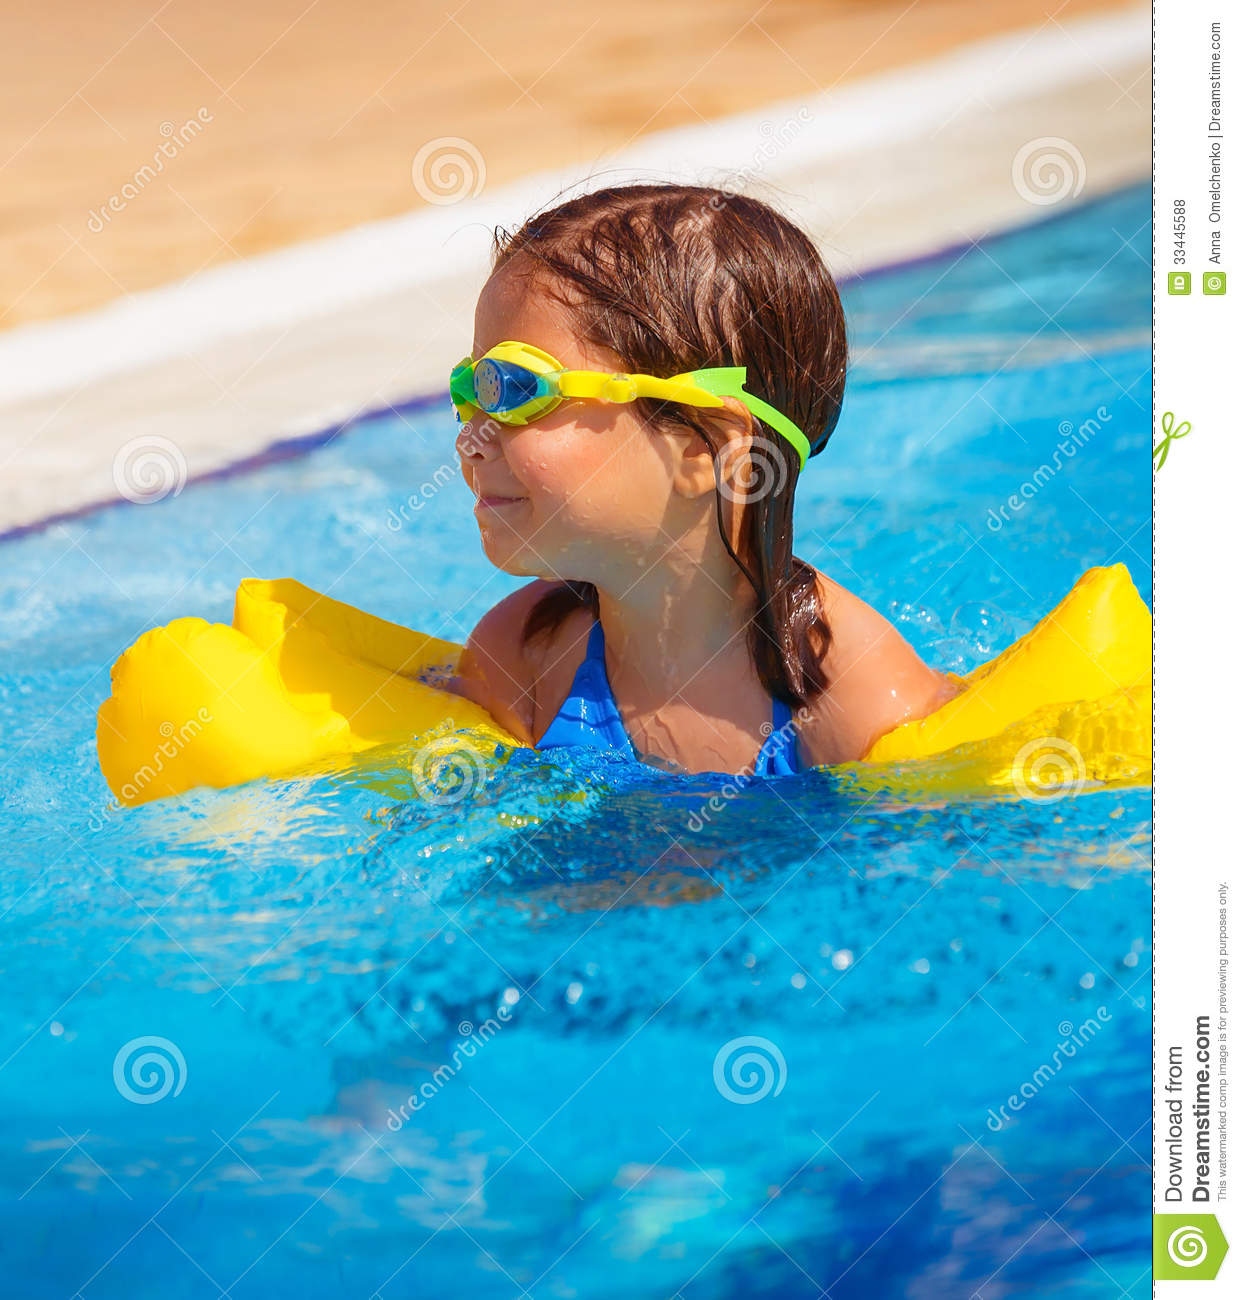 Happy Little Girl In The Pool Royalty Free Stock Photos Image 33445588